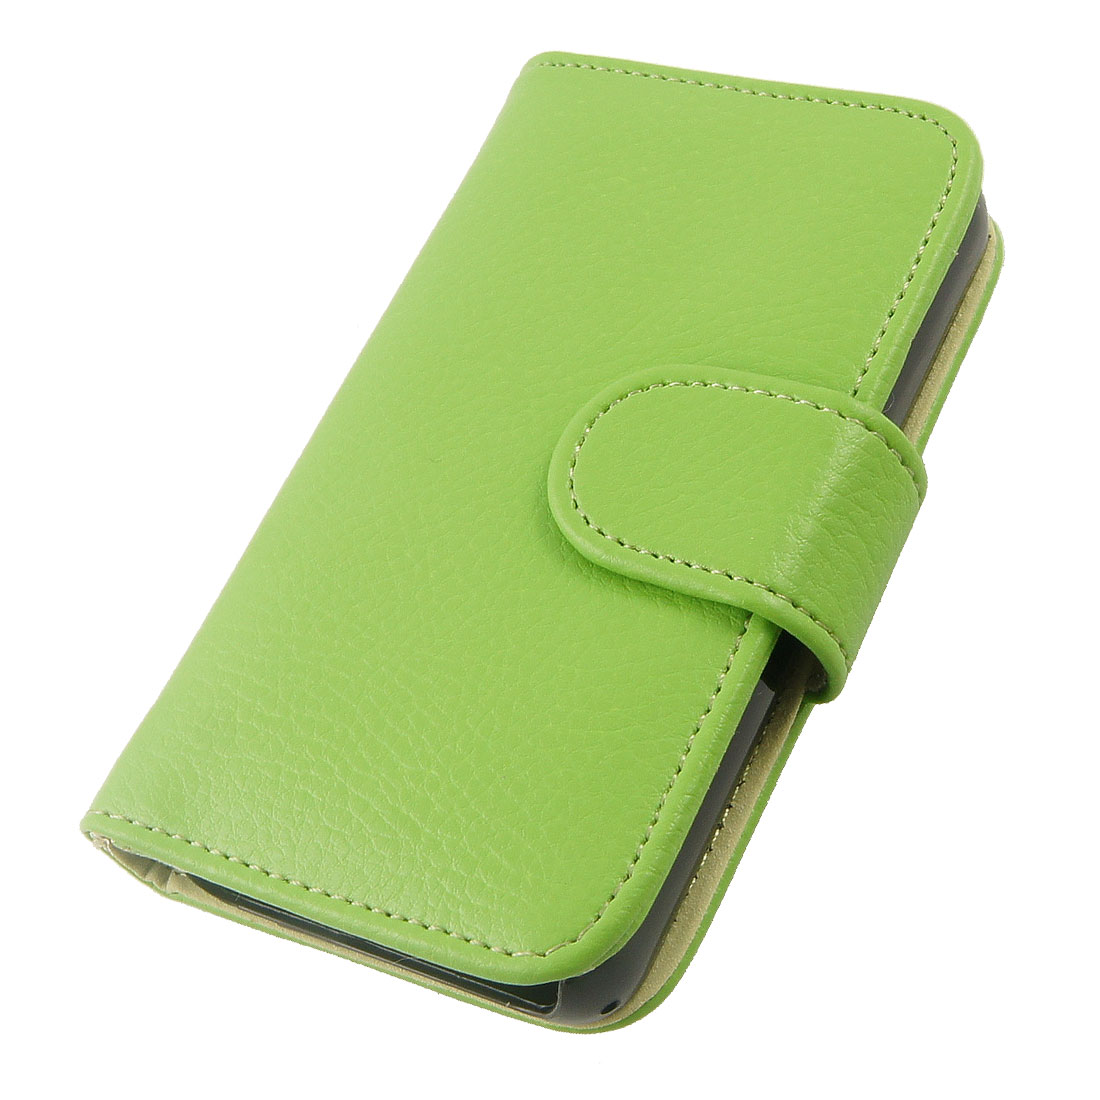 Green Faux Leather Magnetic Flip Closure Case Cover for iPhone 4 4S